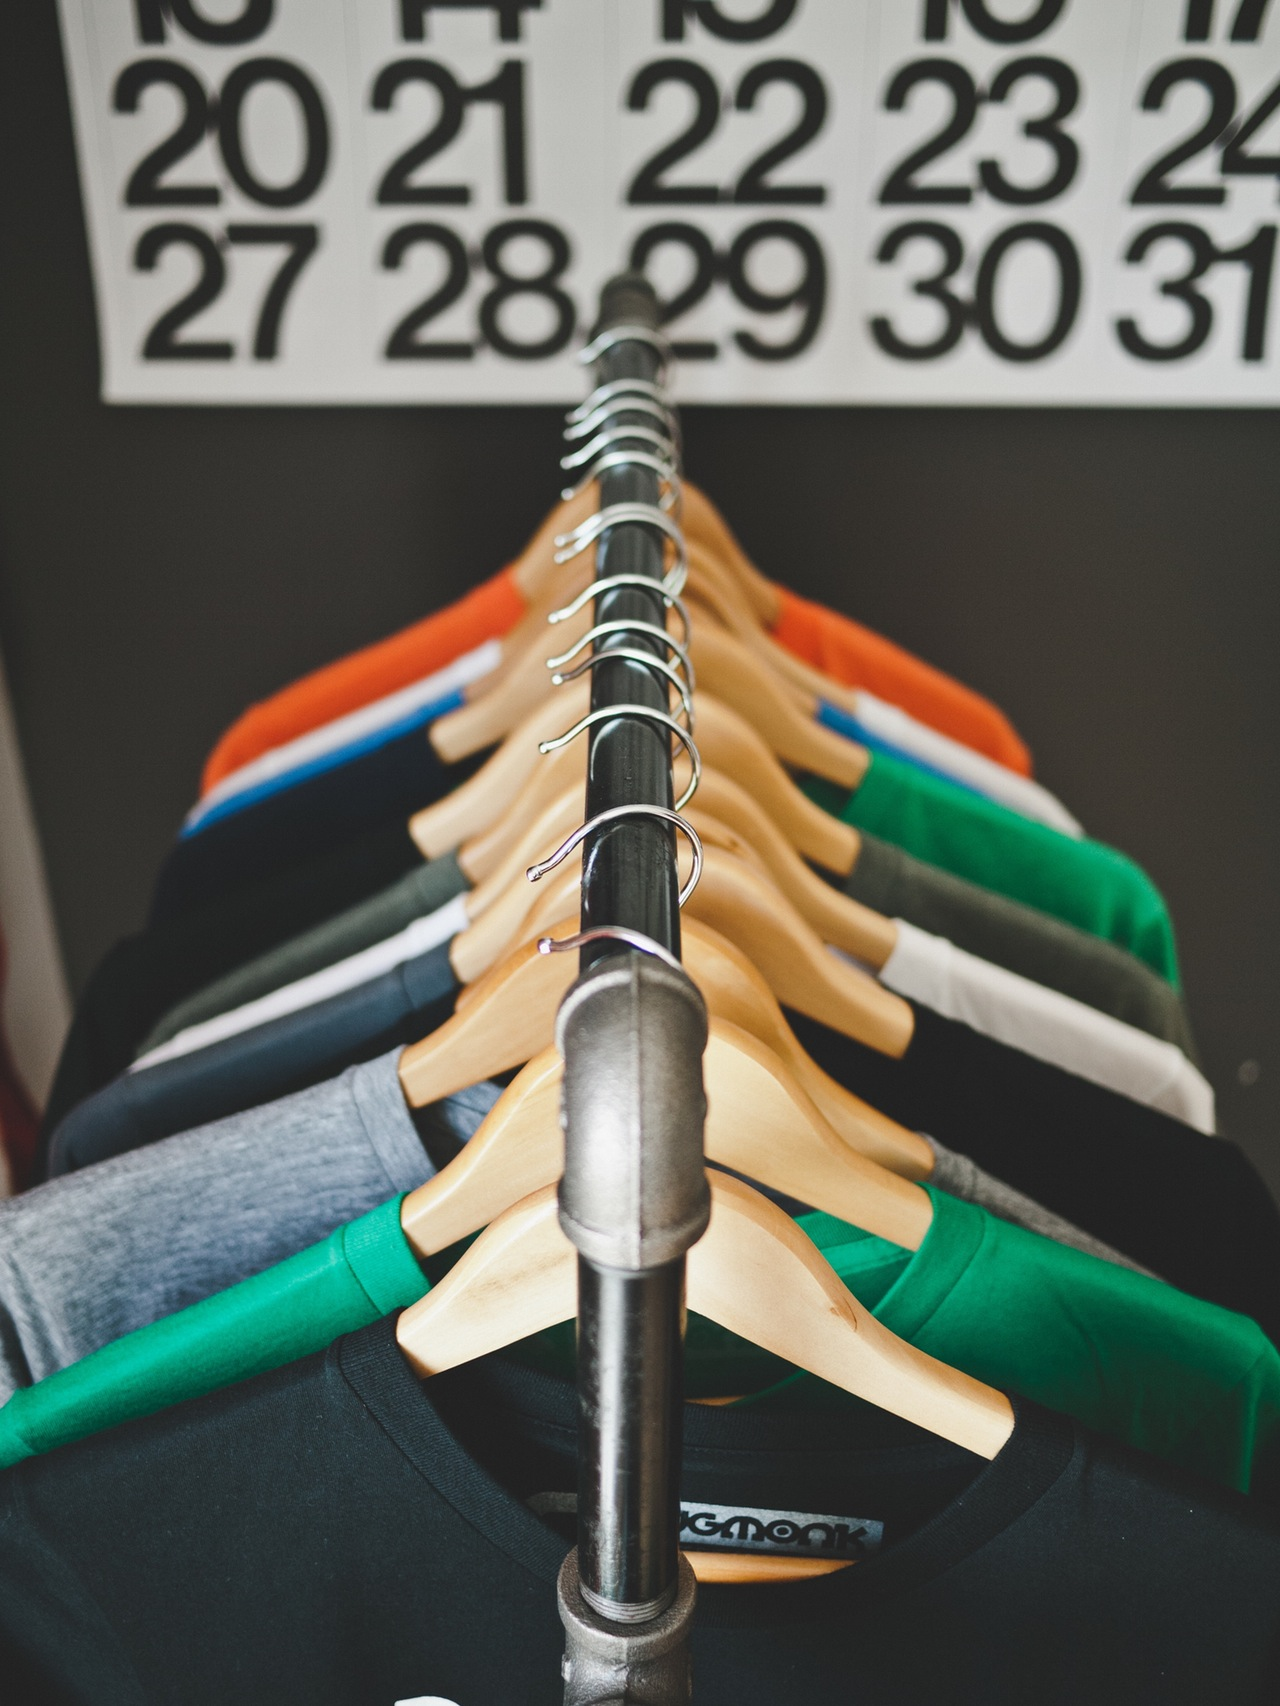 fashion-clothes-hanger-clothes-rack-clothing (1)